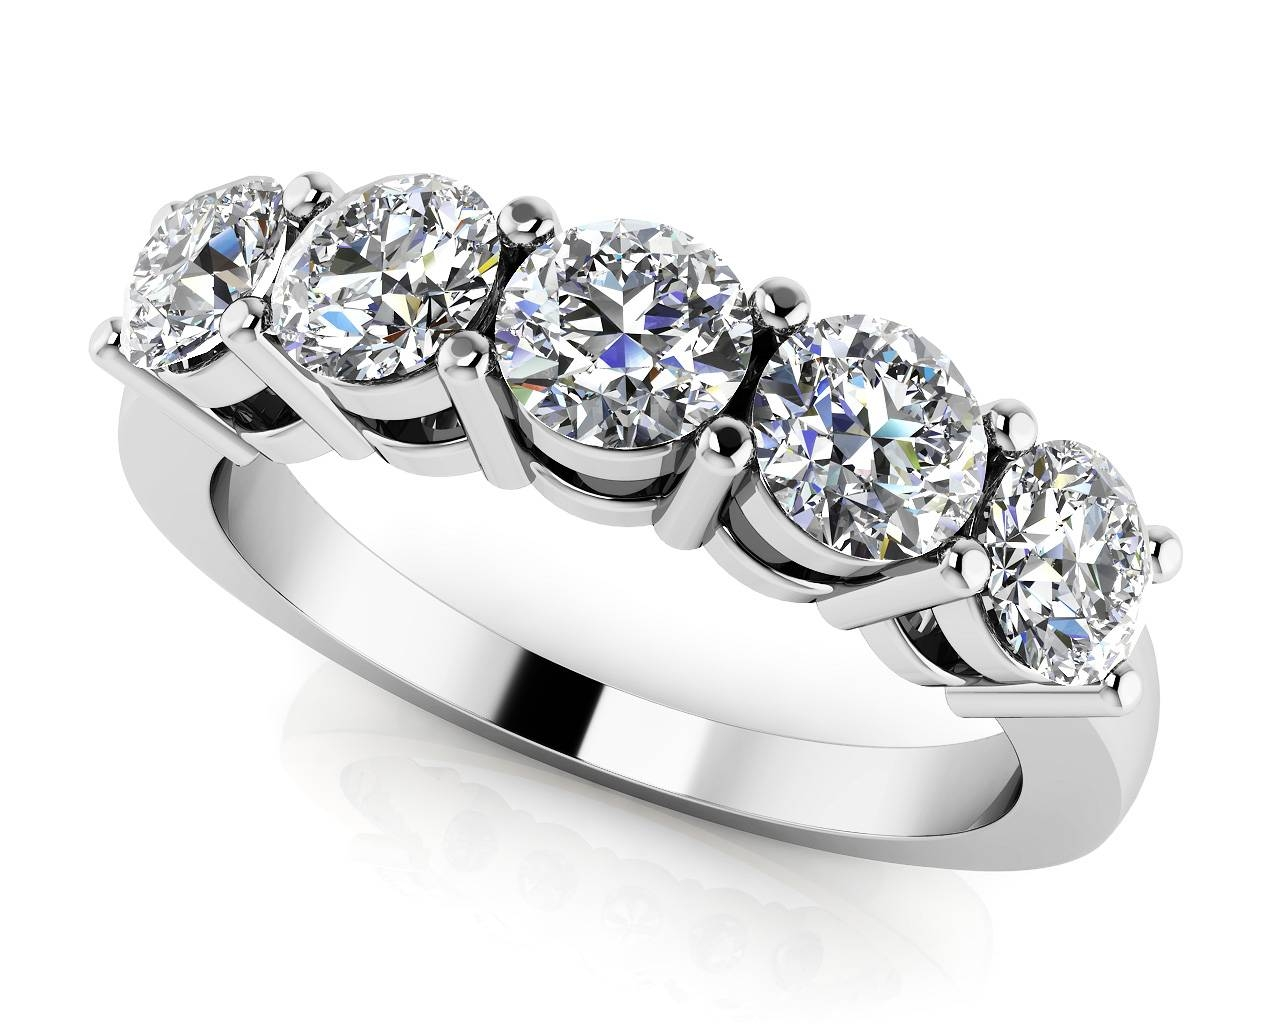 Design Your Own Diamond Anniversary Ring & Eternity Ring In Recent Wedding Anniversary Rings Sets (View 7 of 25)